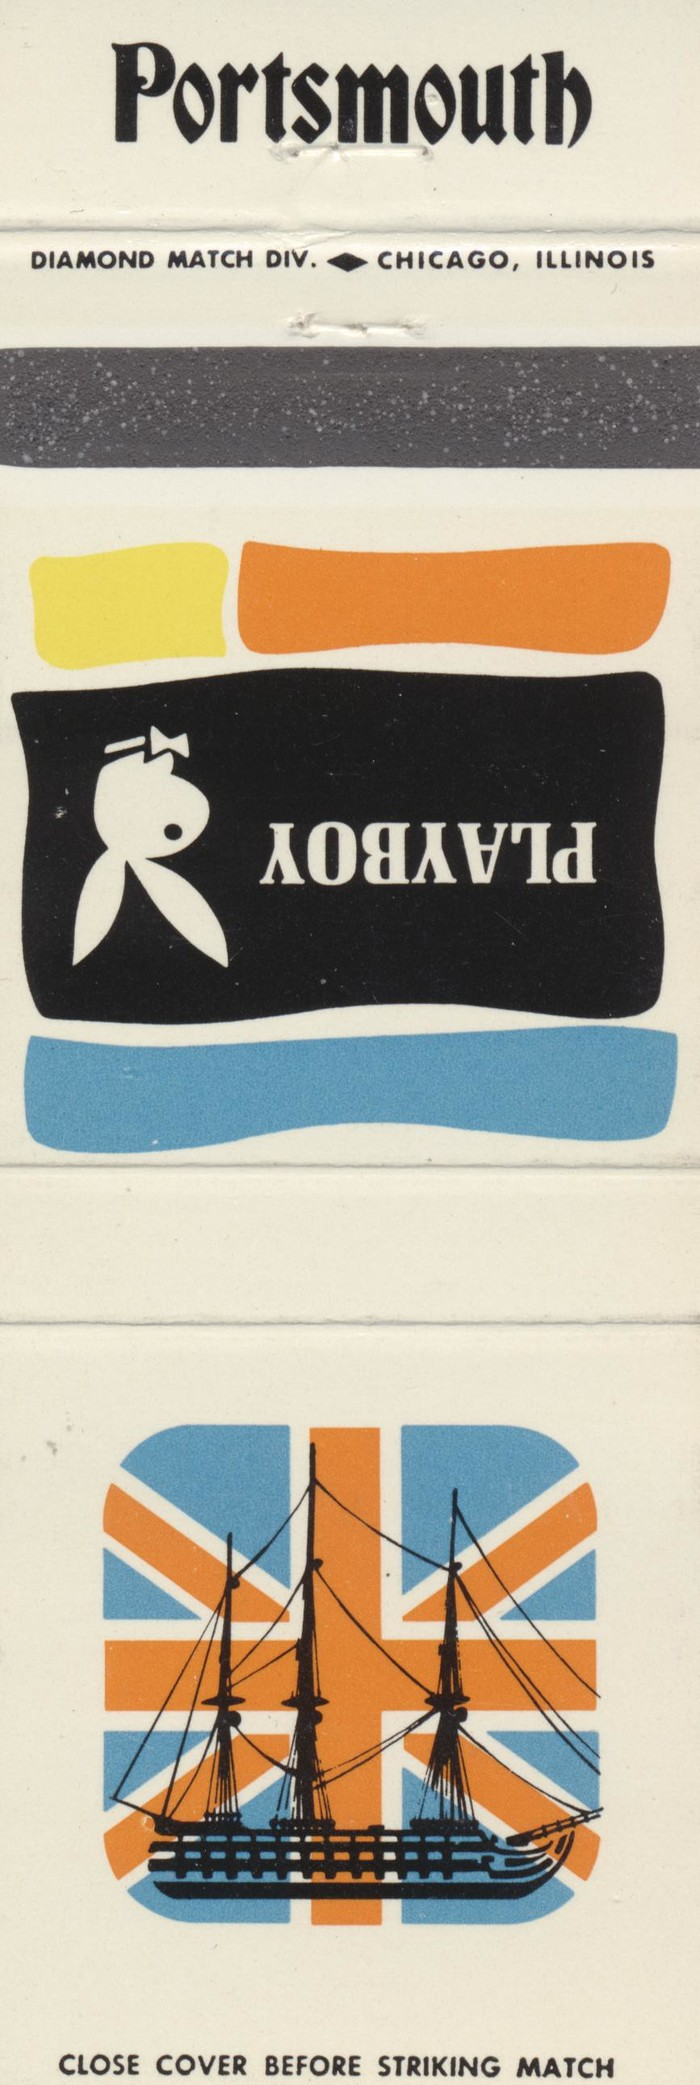 The Playboy Club city matchbook covers 21